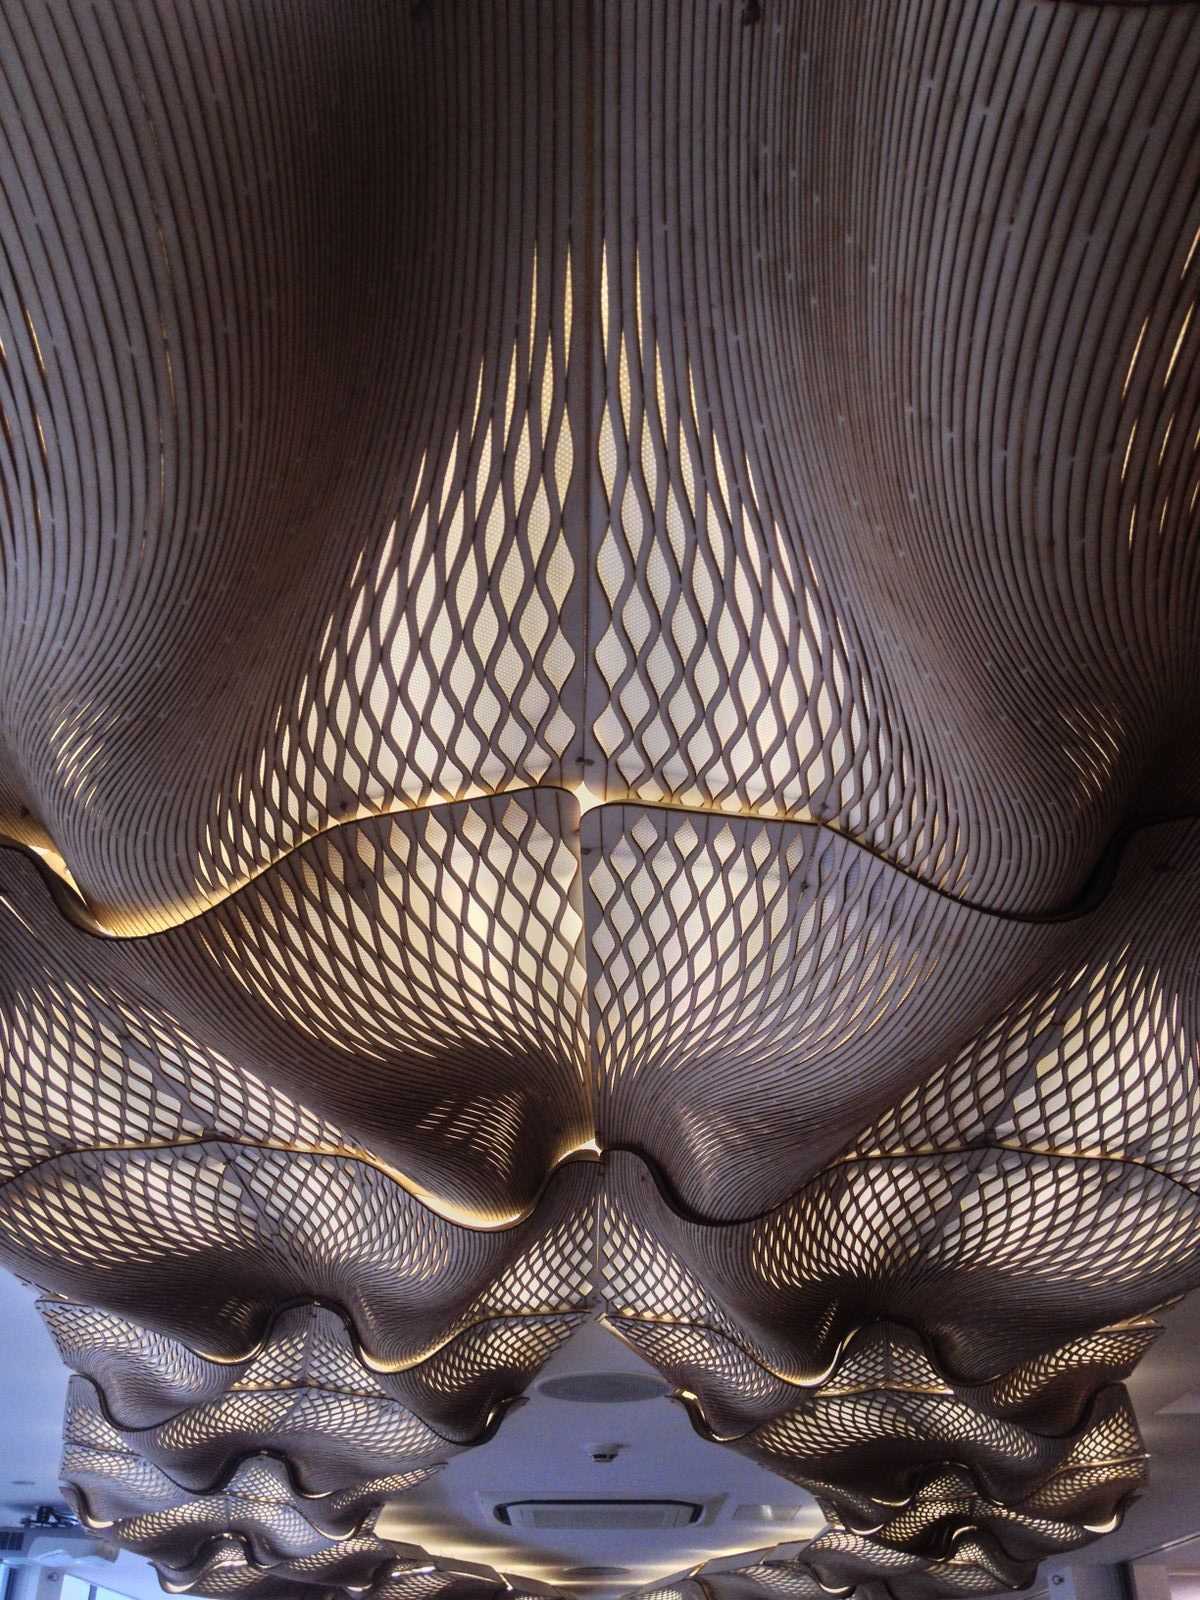 TheWoodenWaves at BuroHappold by Mamou-Mani - Picture by Lorenzo Vianelli